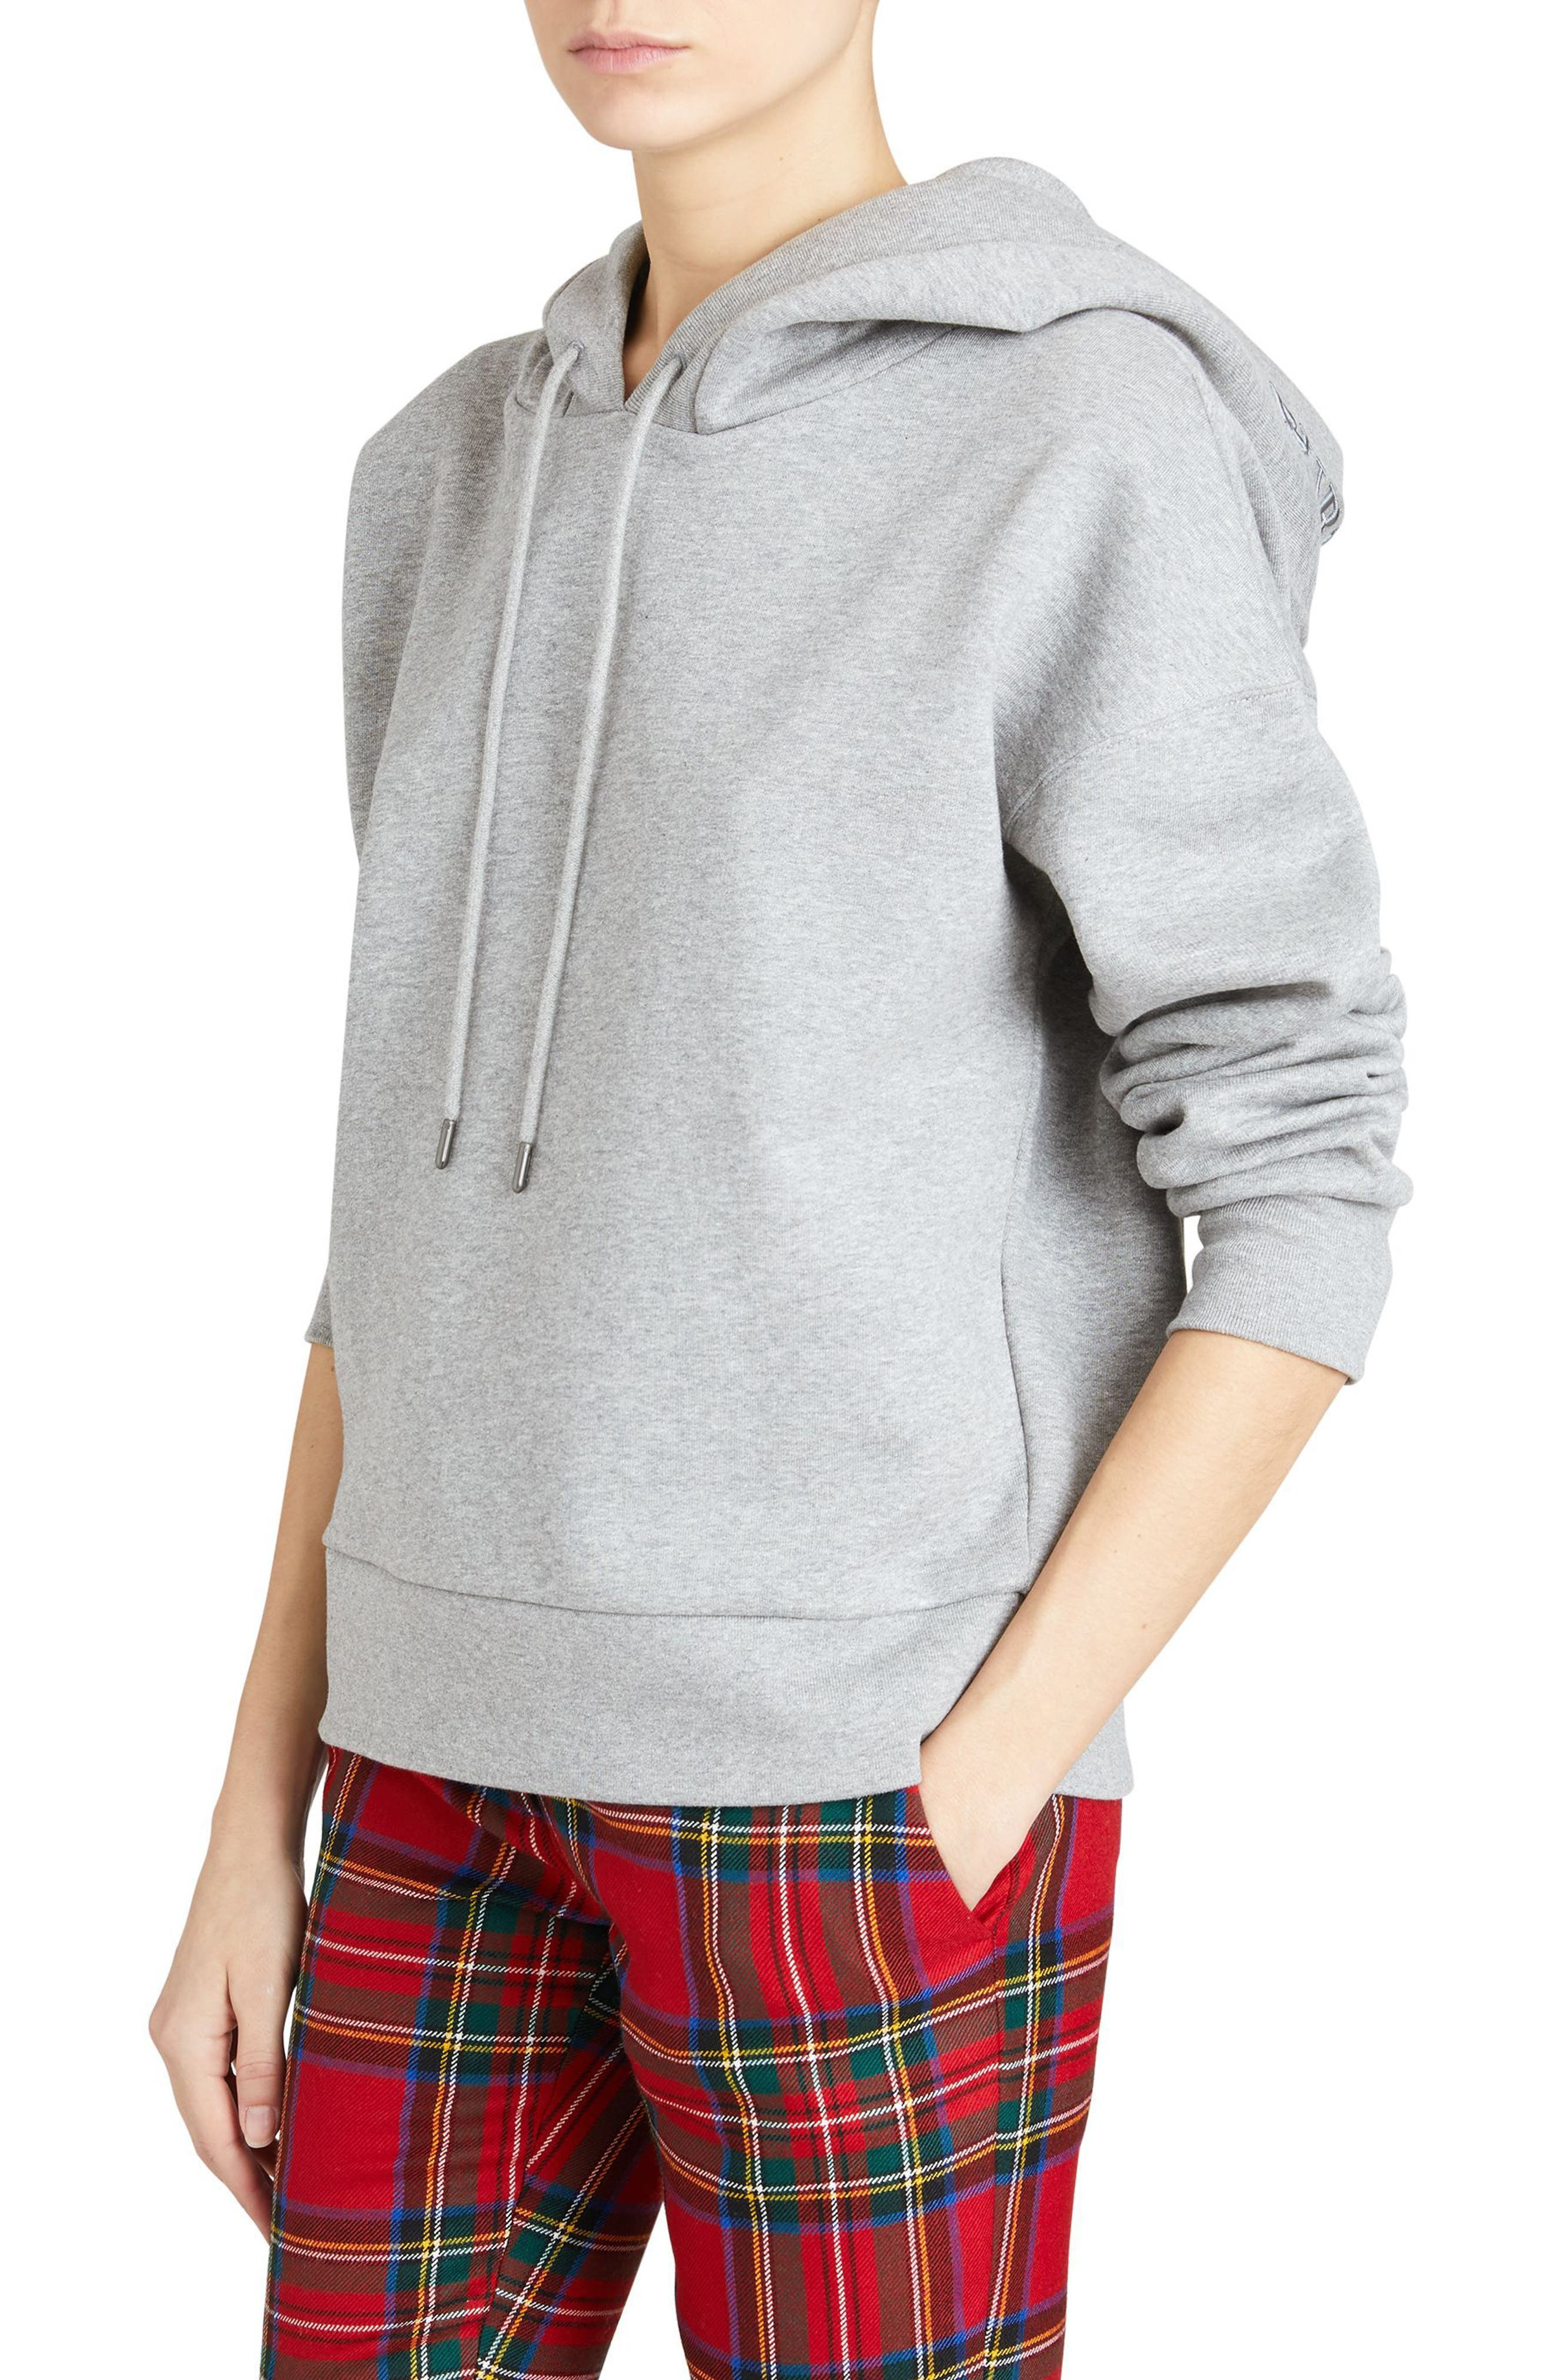 Escara Embroidered Hoodie,                             Alternate thumbnail 6, color,